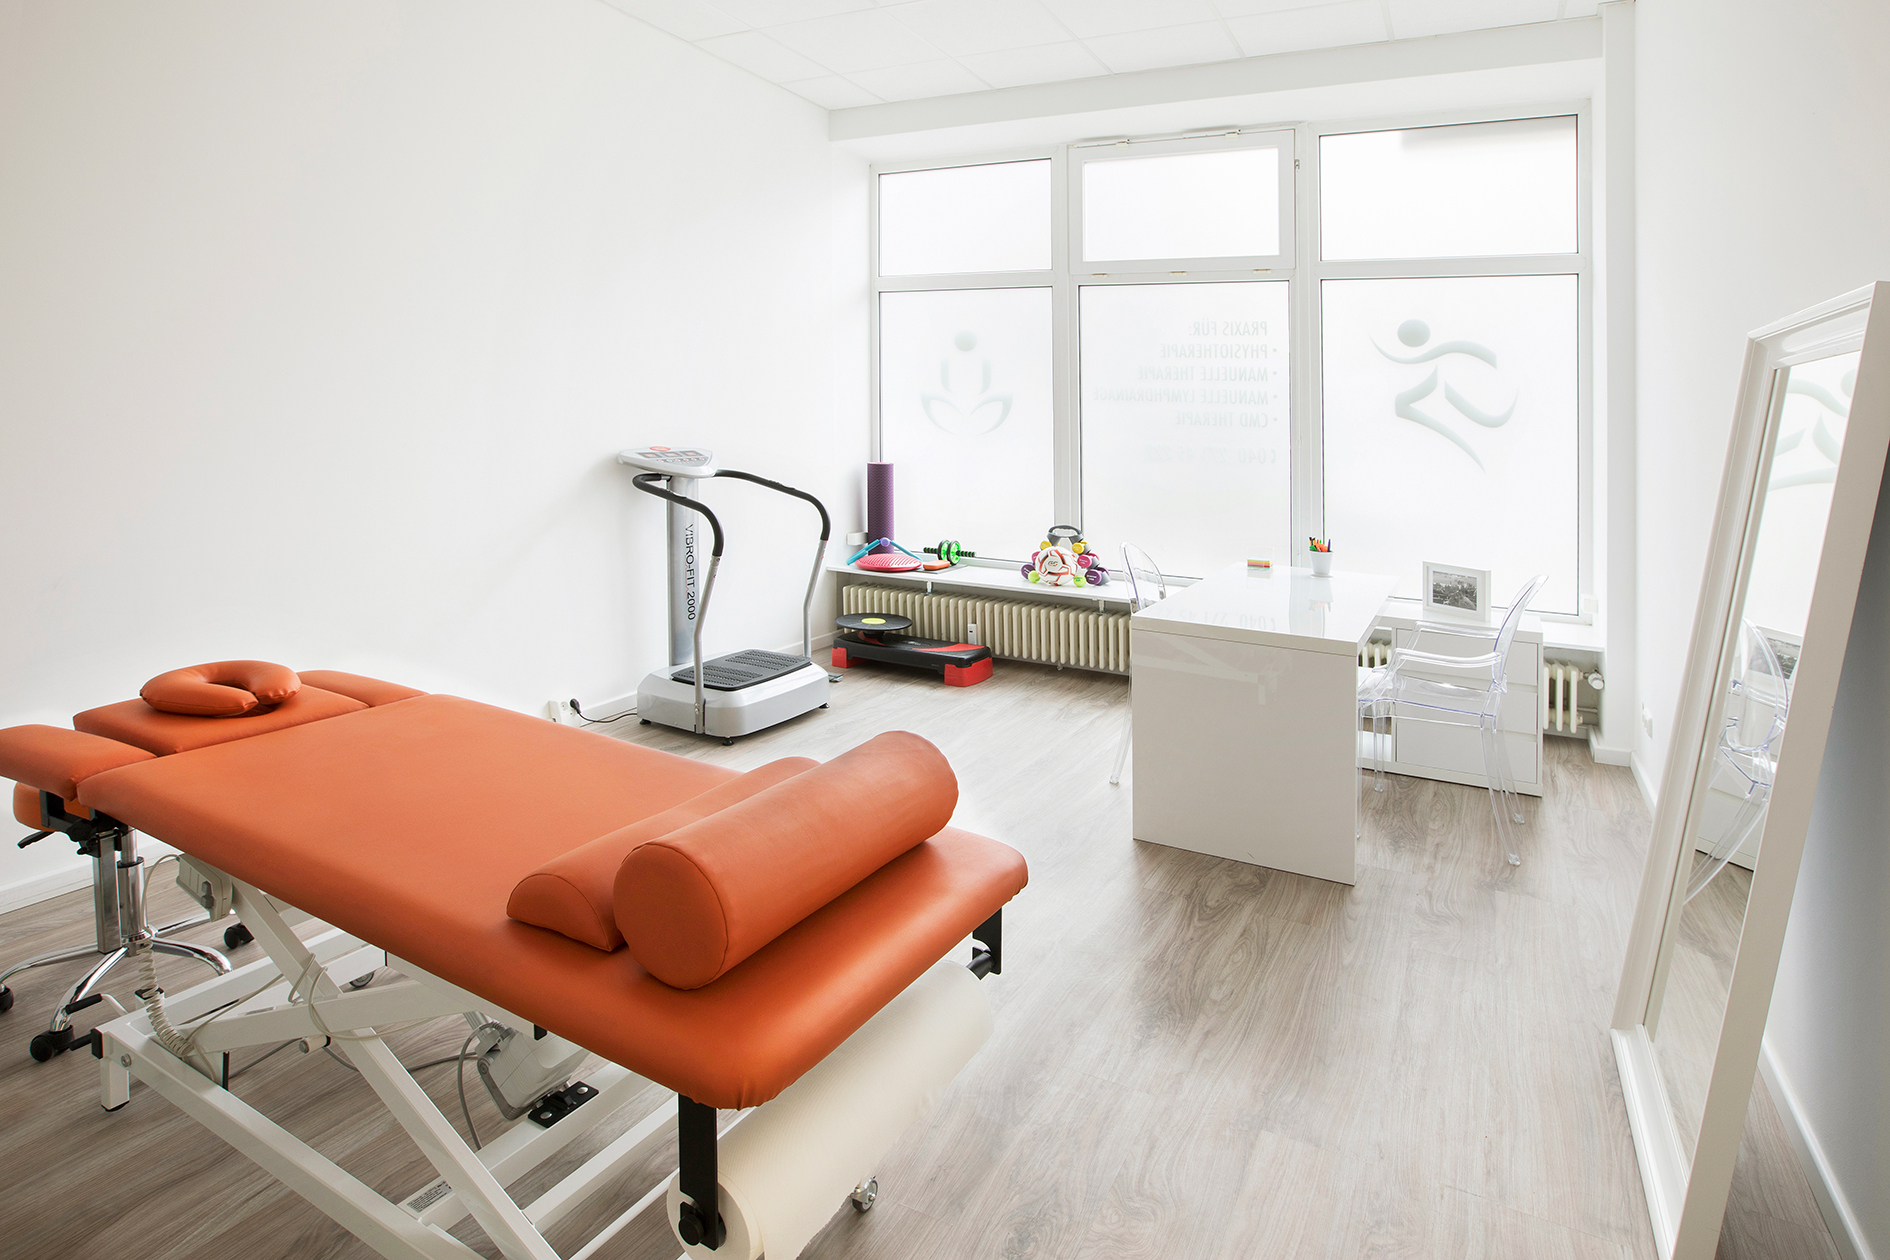 Physiotherapie_Manuelle_Therapie_Praxis_2